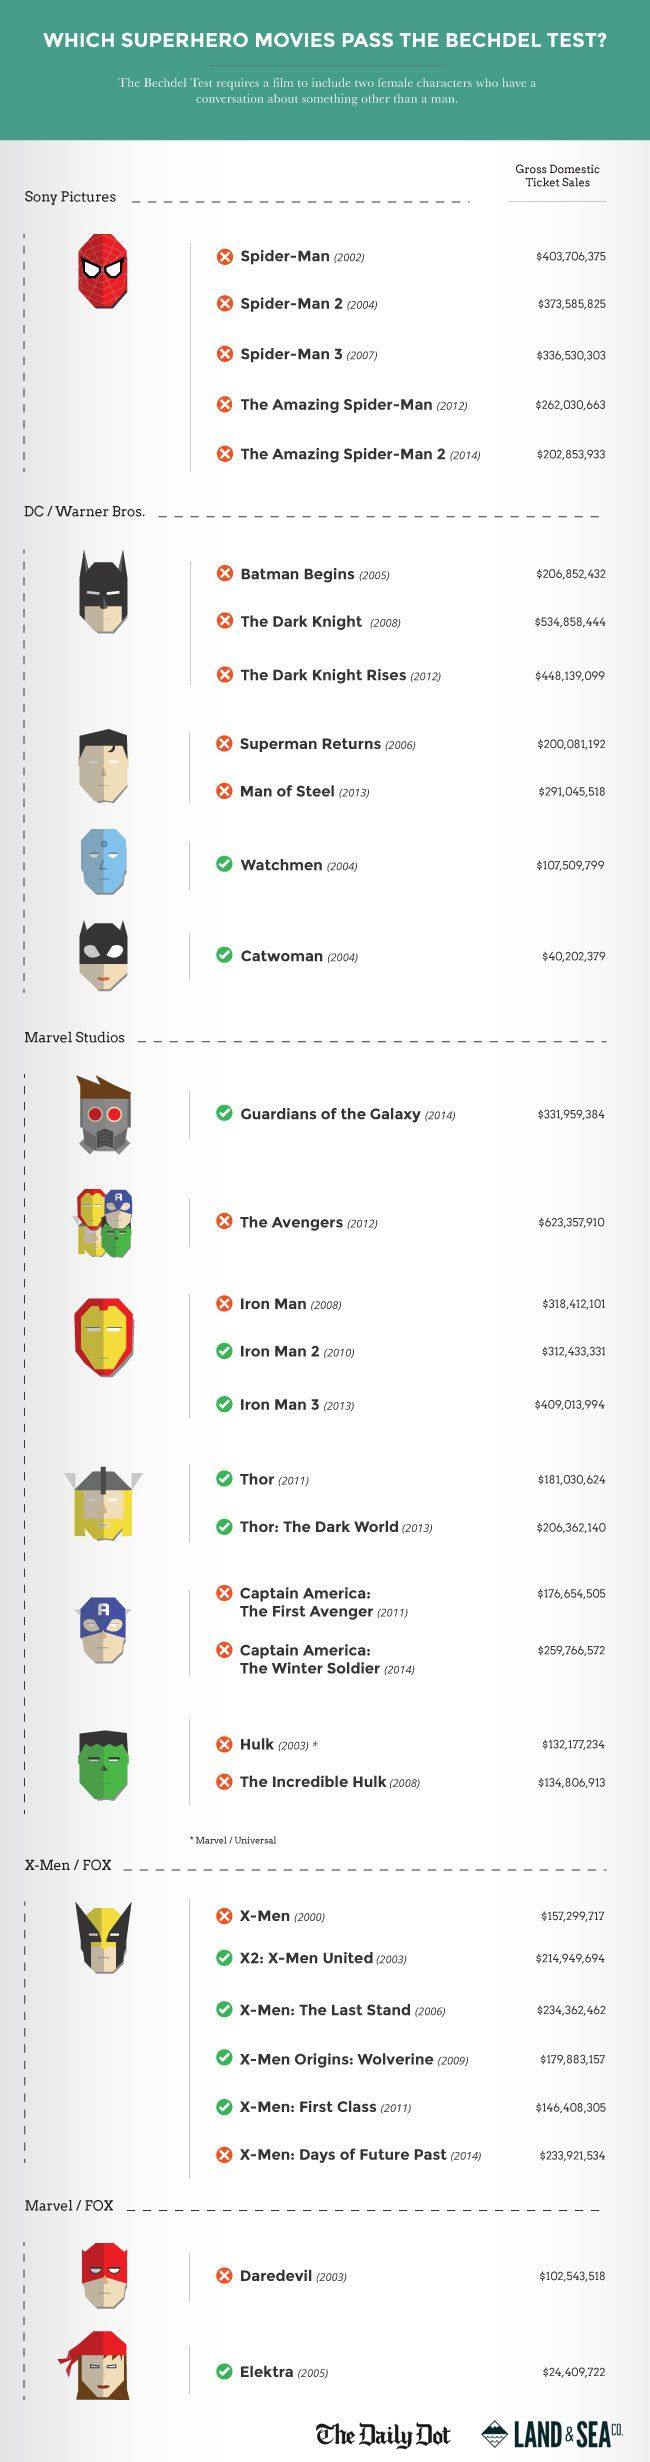 An illustrated guide to superhero movies that pass the Bechdel Test. Accompanying article on click through.